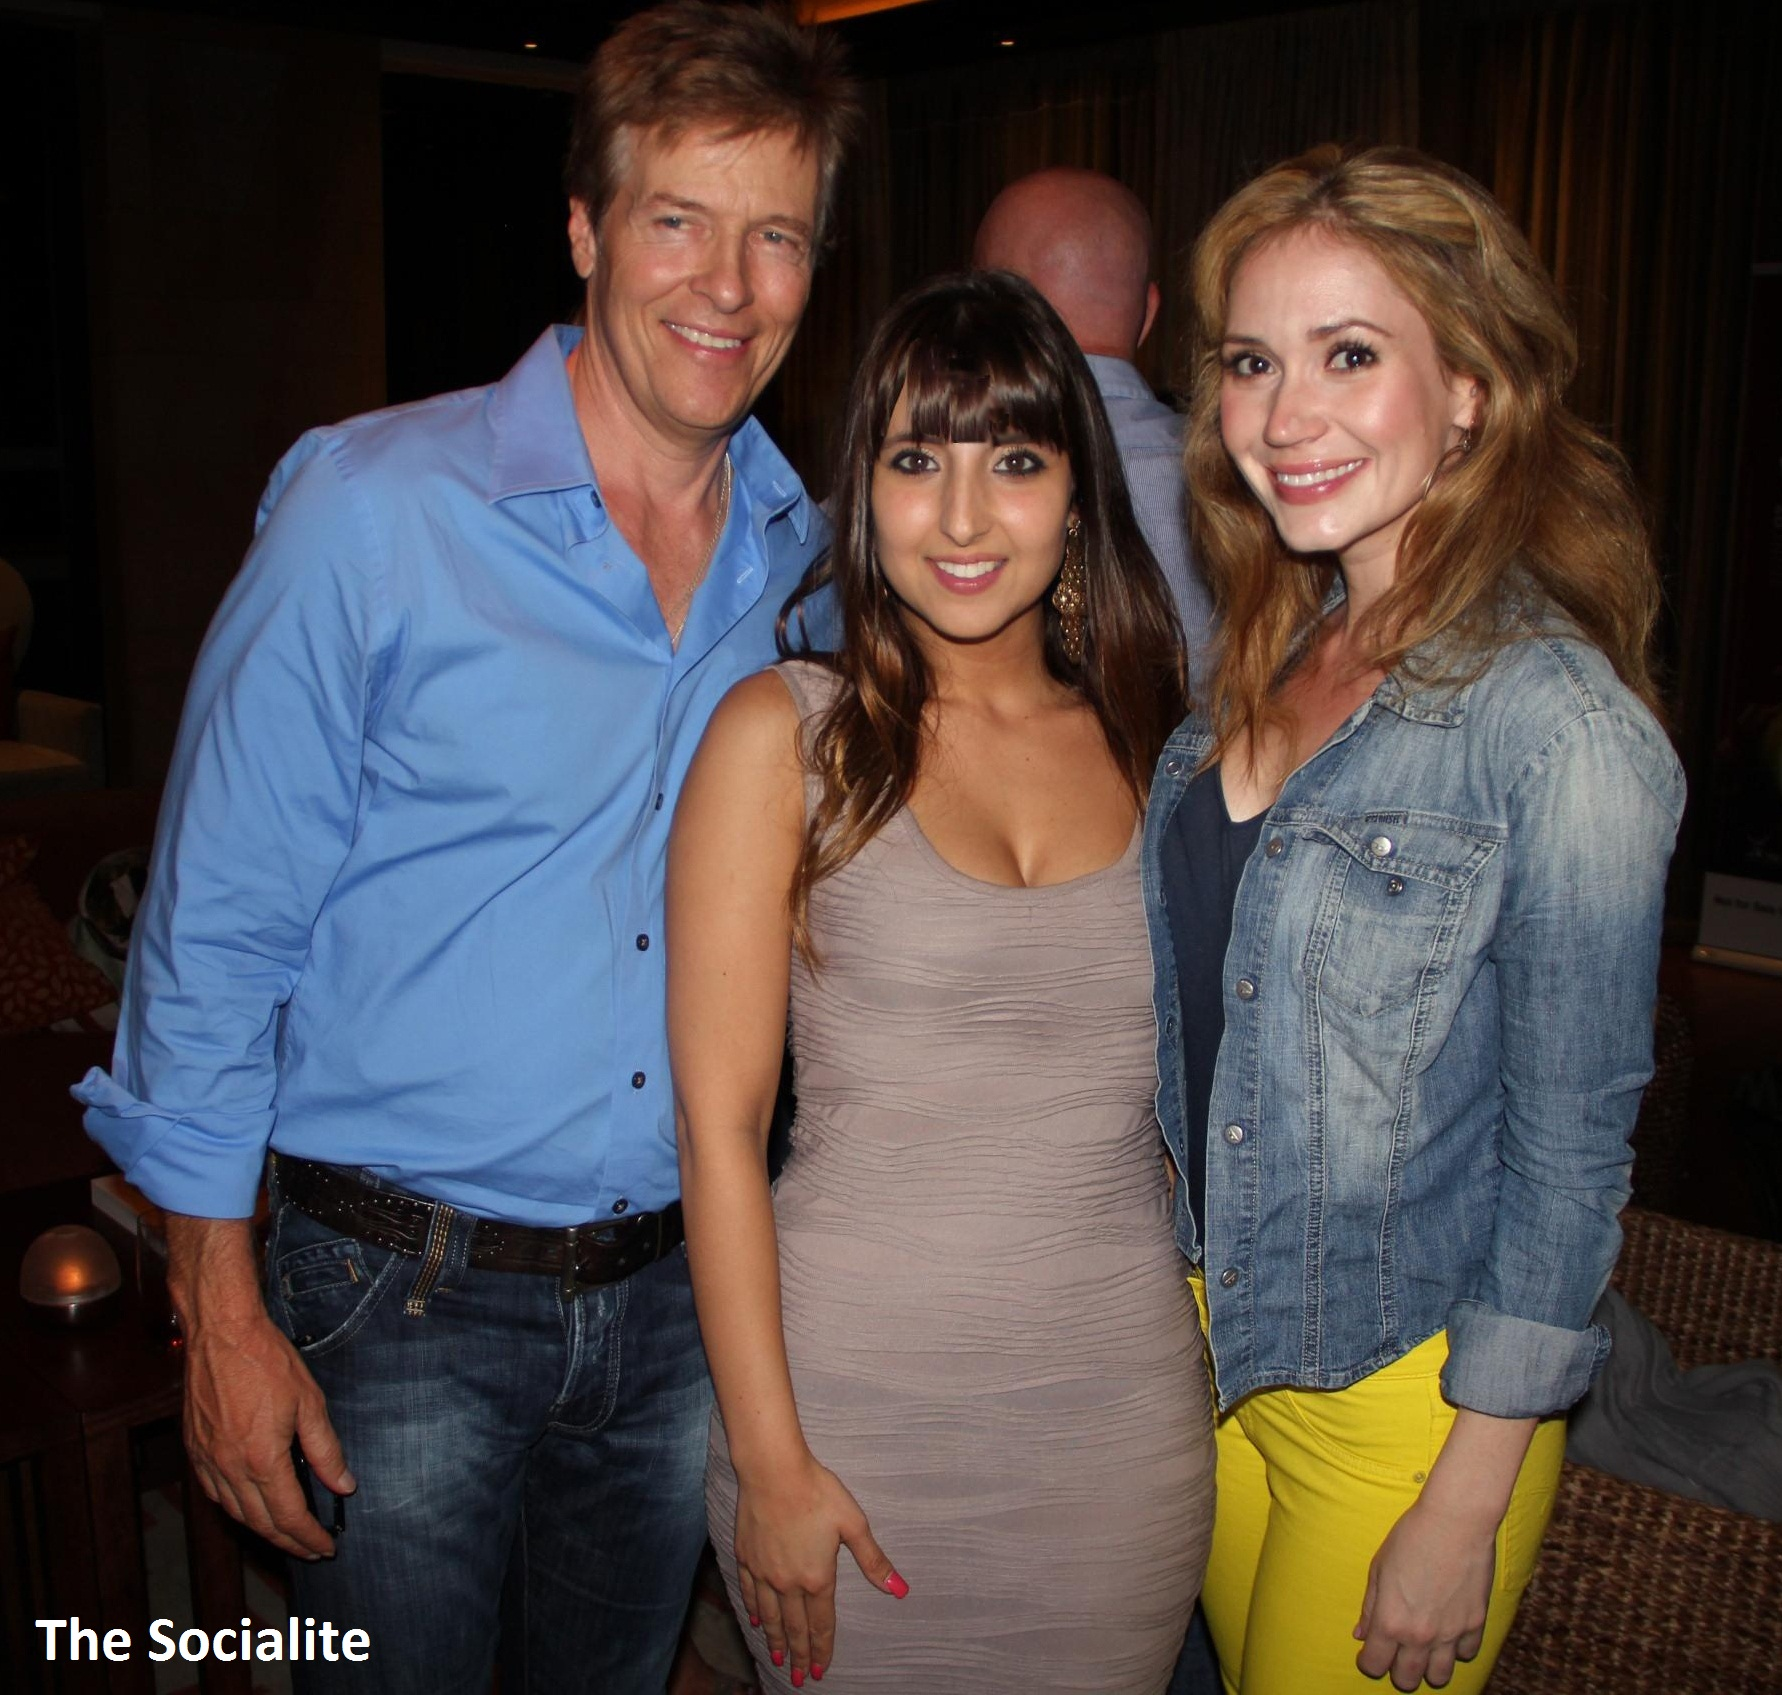 Ashley Jones And Jack Wagner Images | TheCelebrityPix